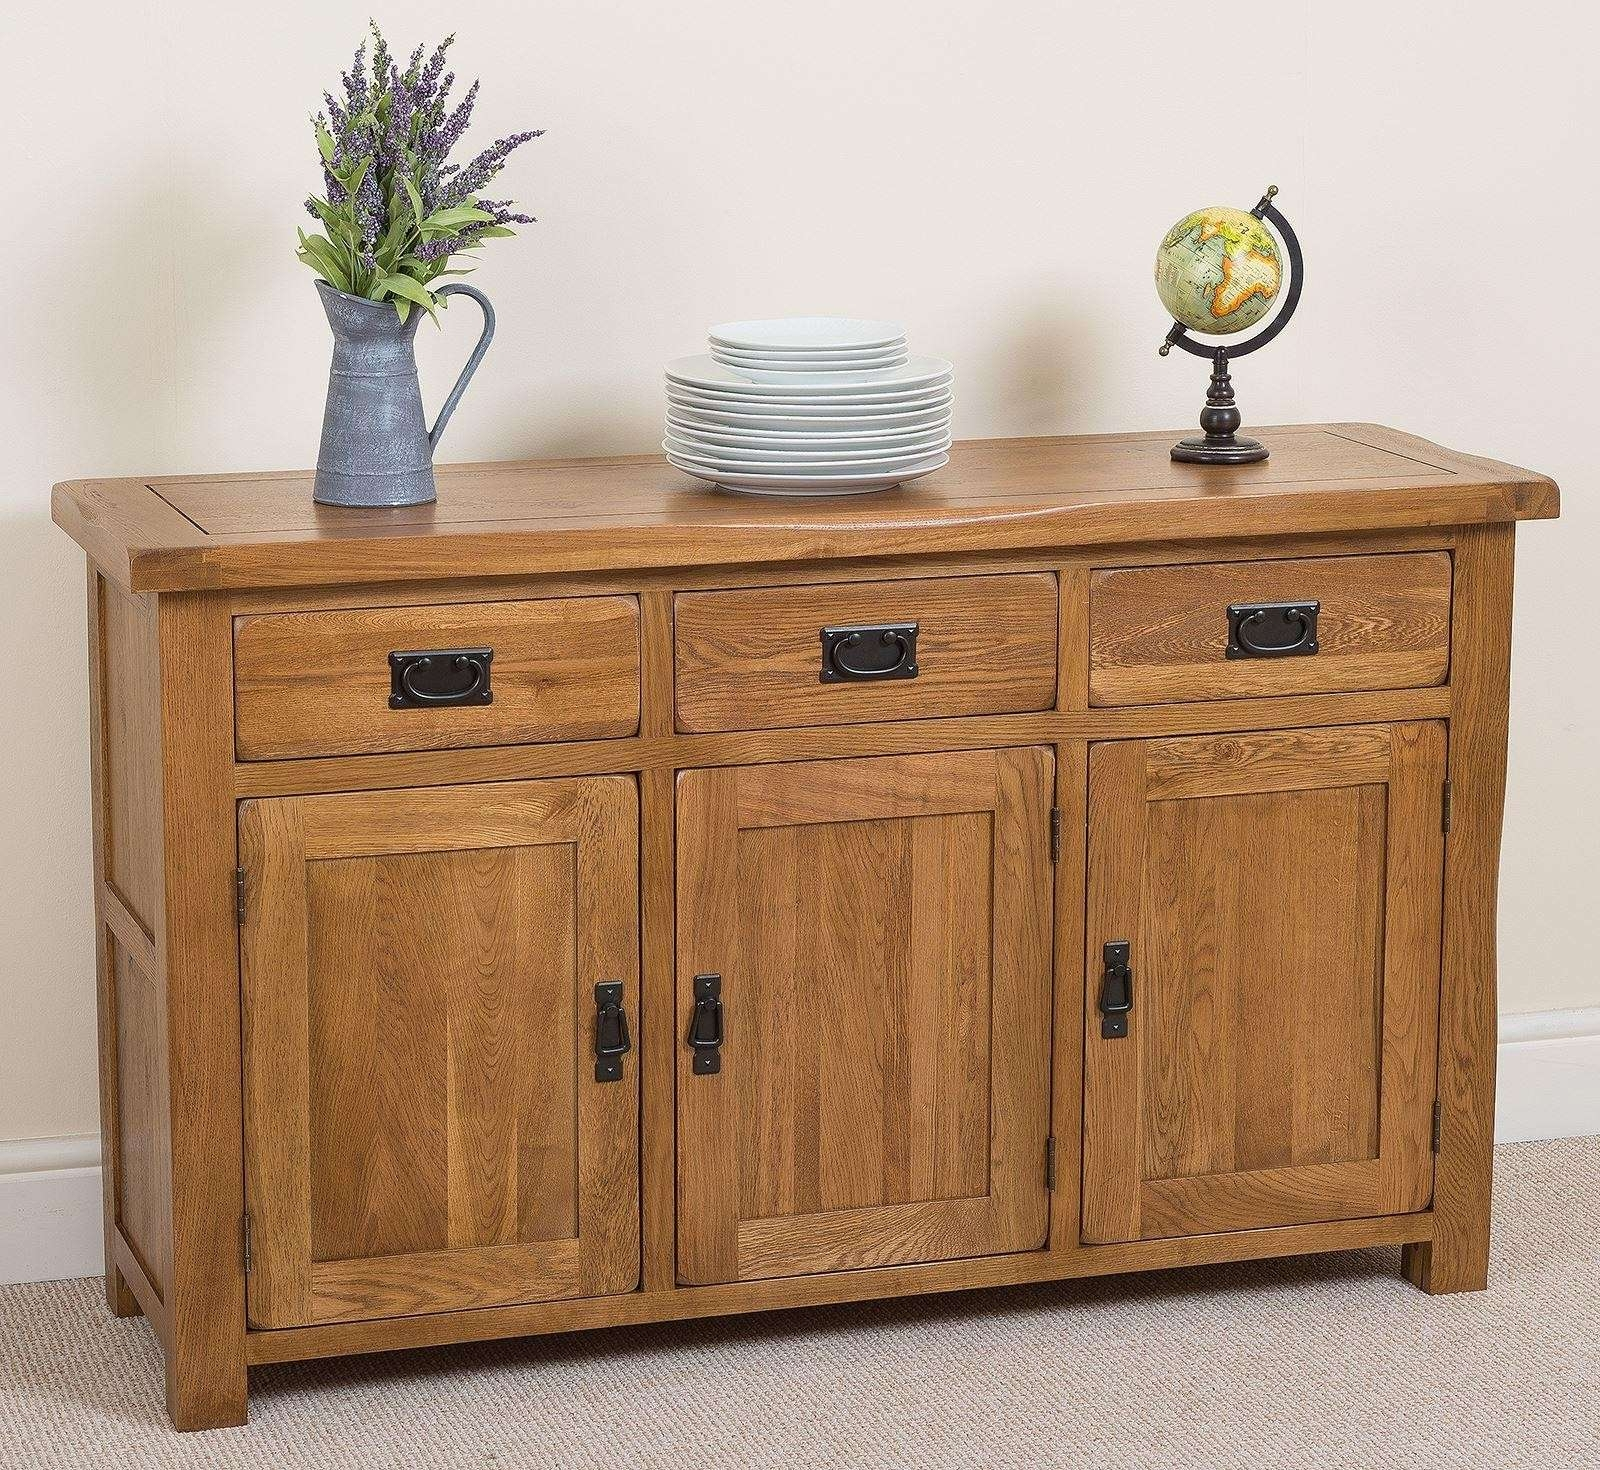 Cotswold Large Oak Sideboard | Free Uk Delivery For Large Sideboards (View 13 of 20)